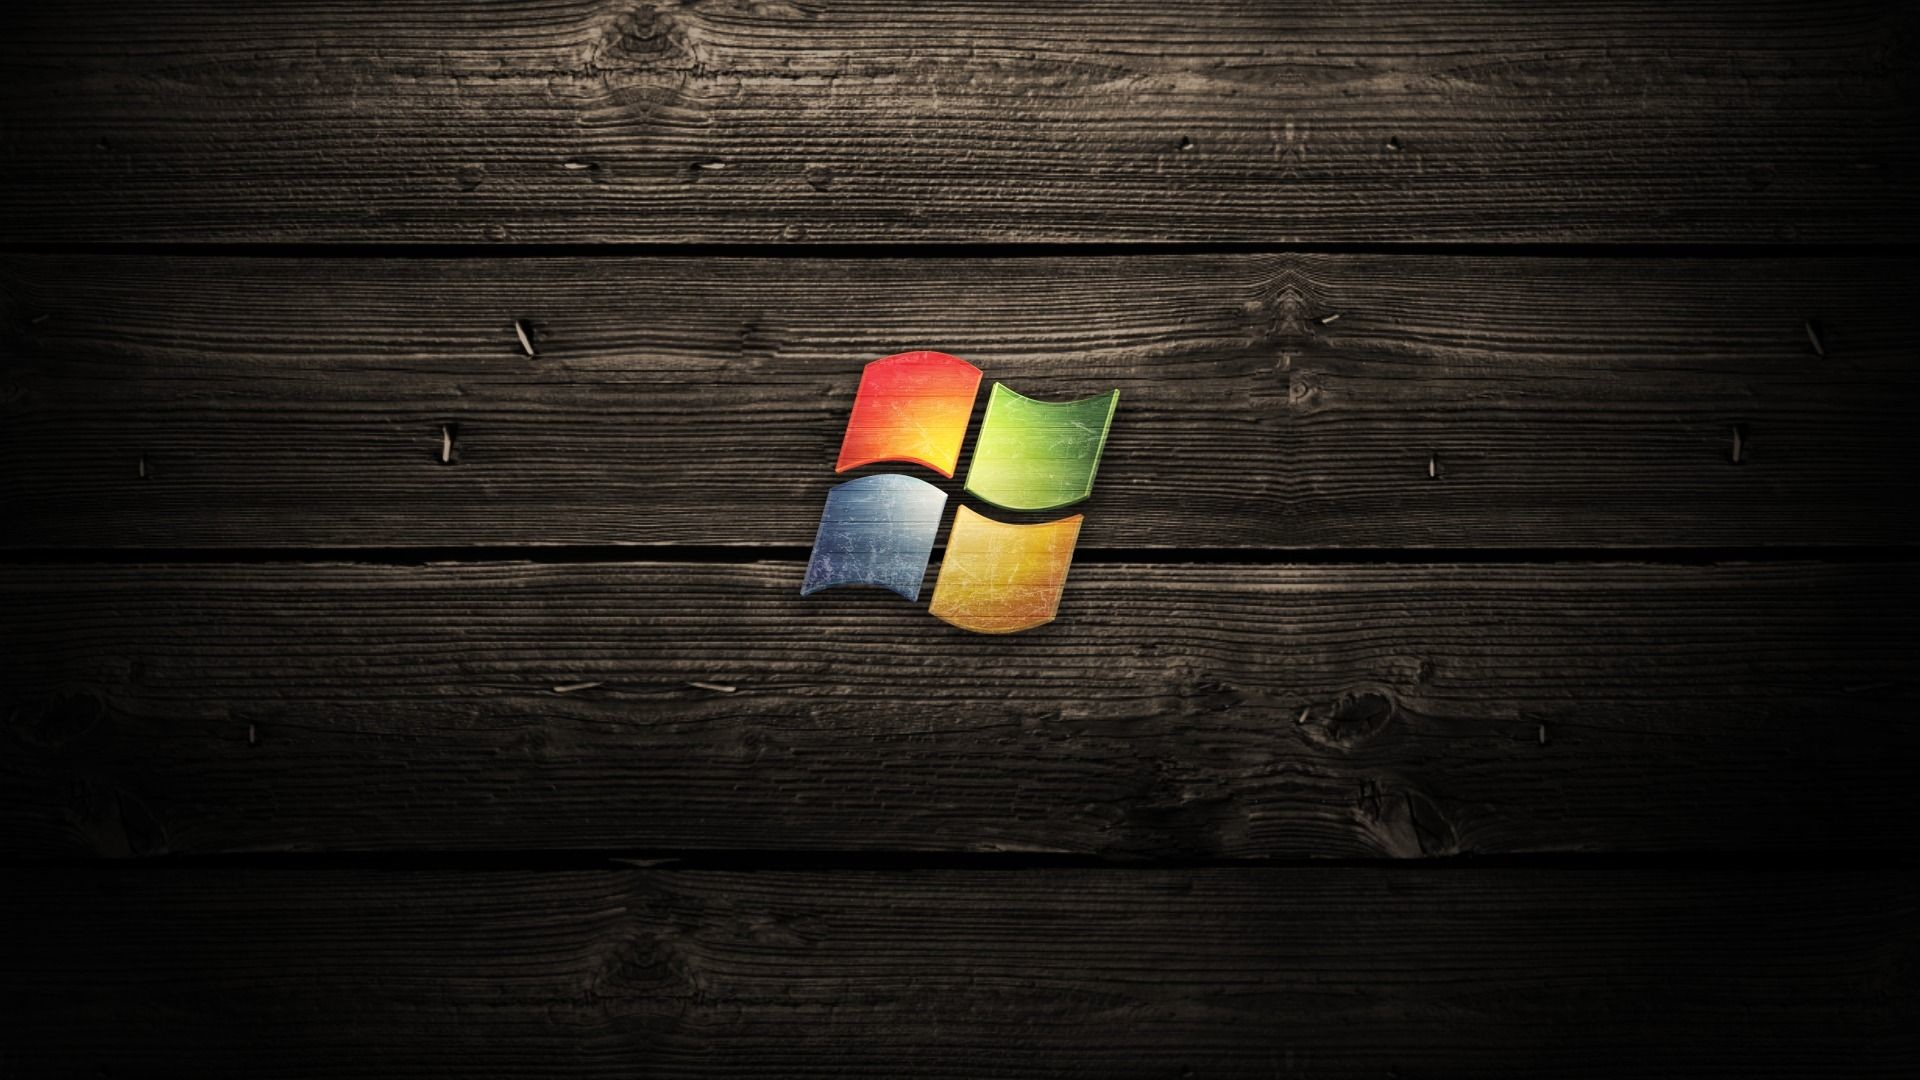 Windows 7 HD Wallpapers 1920×1080 (49 Wallpapers) – Adorable Wallpapers